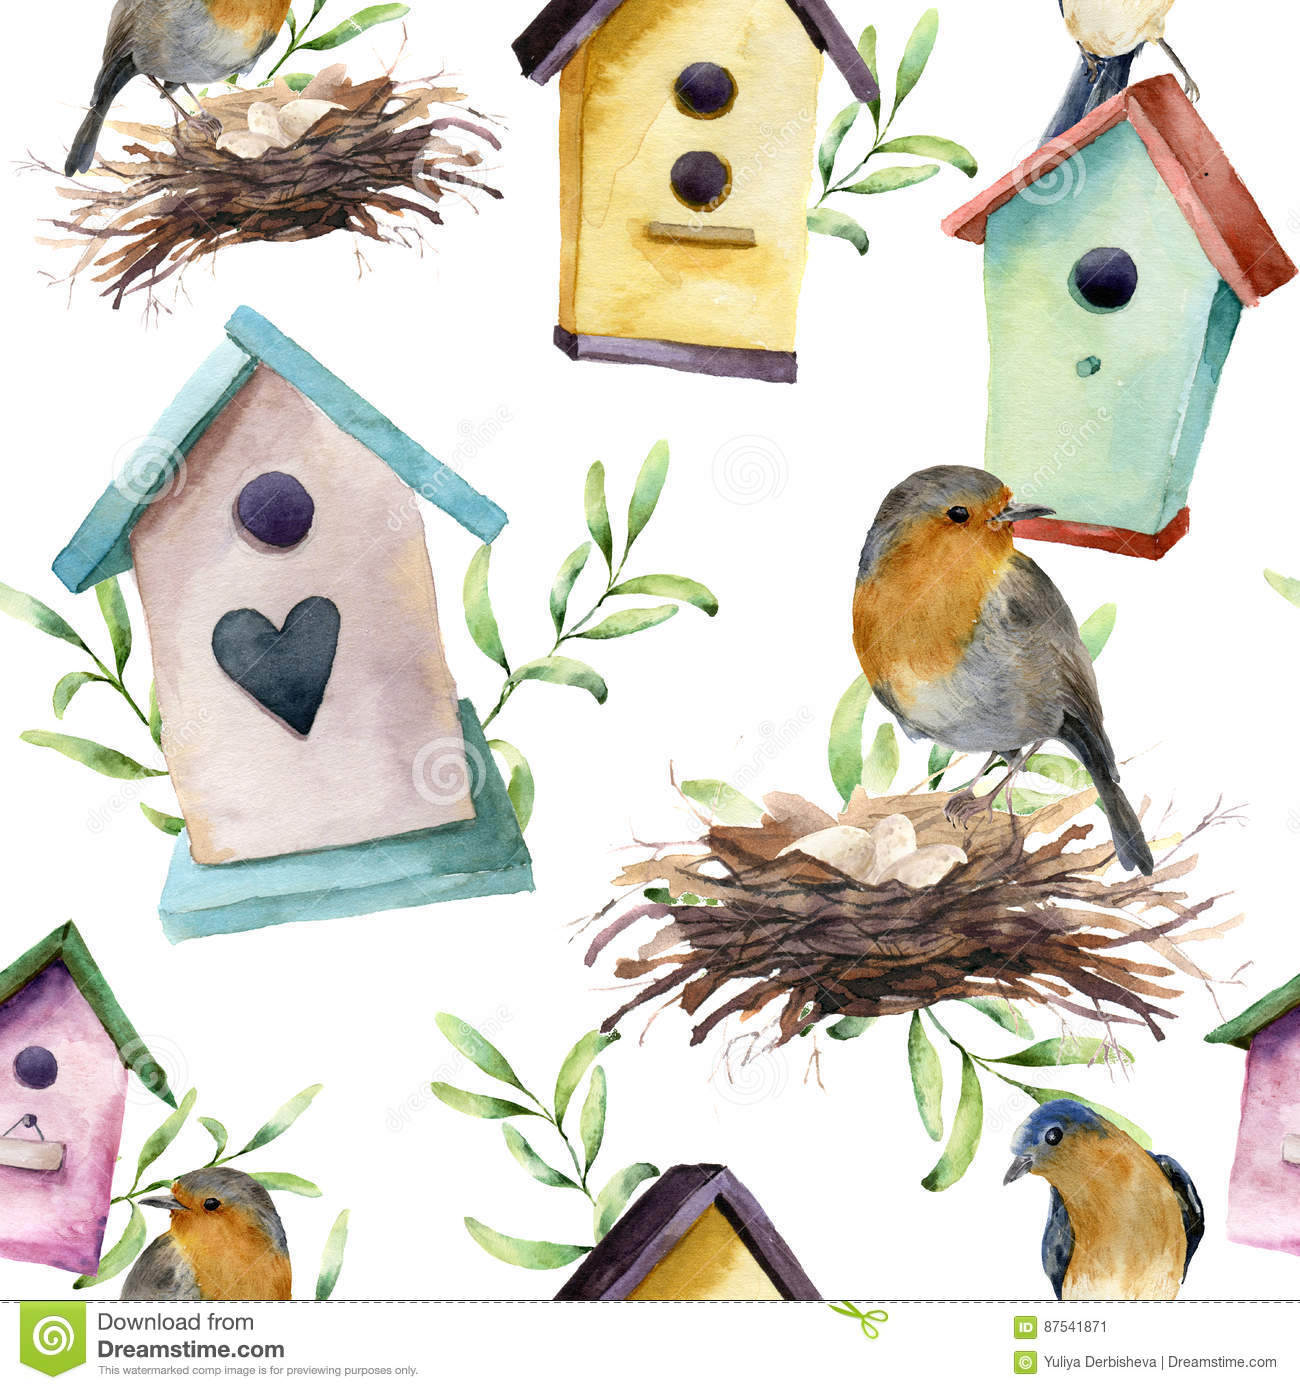 Watercolor Pattern With Bird Birdhouse Nest With Eggs And Greenery Hand Painted Spring Ornament With Nesting Box And Stock Illustration Illustration Of Bird Greeting 87541871